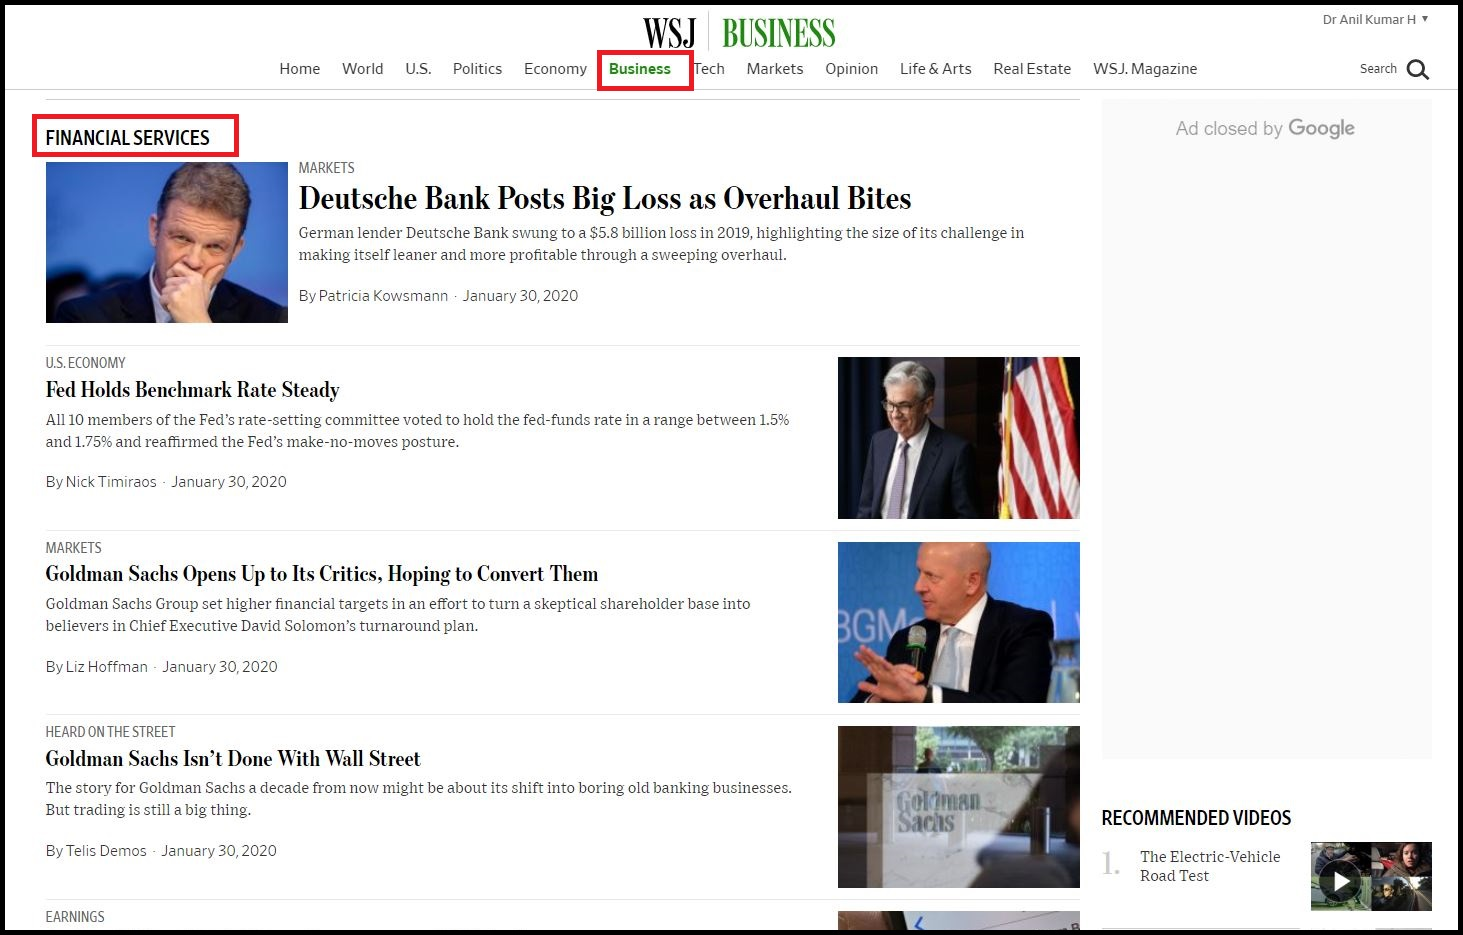 Open Wall Street Journal  Login with WSJ Credentials then Click on Business and Select Financial Services